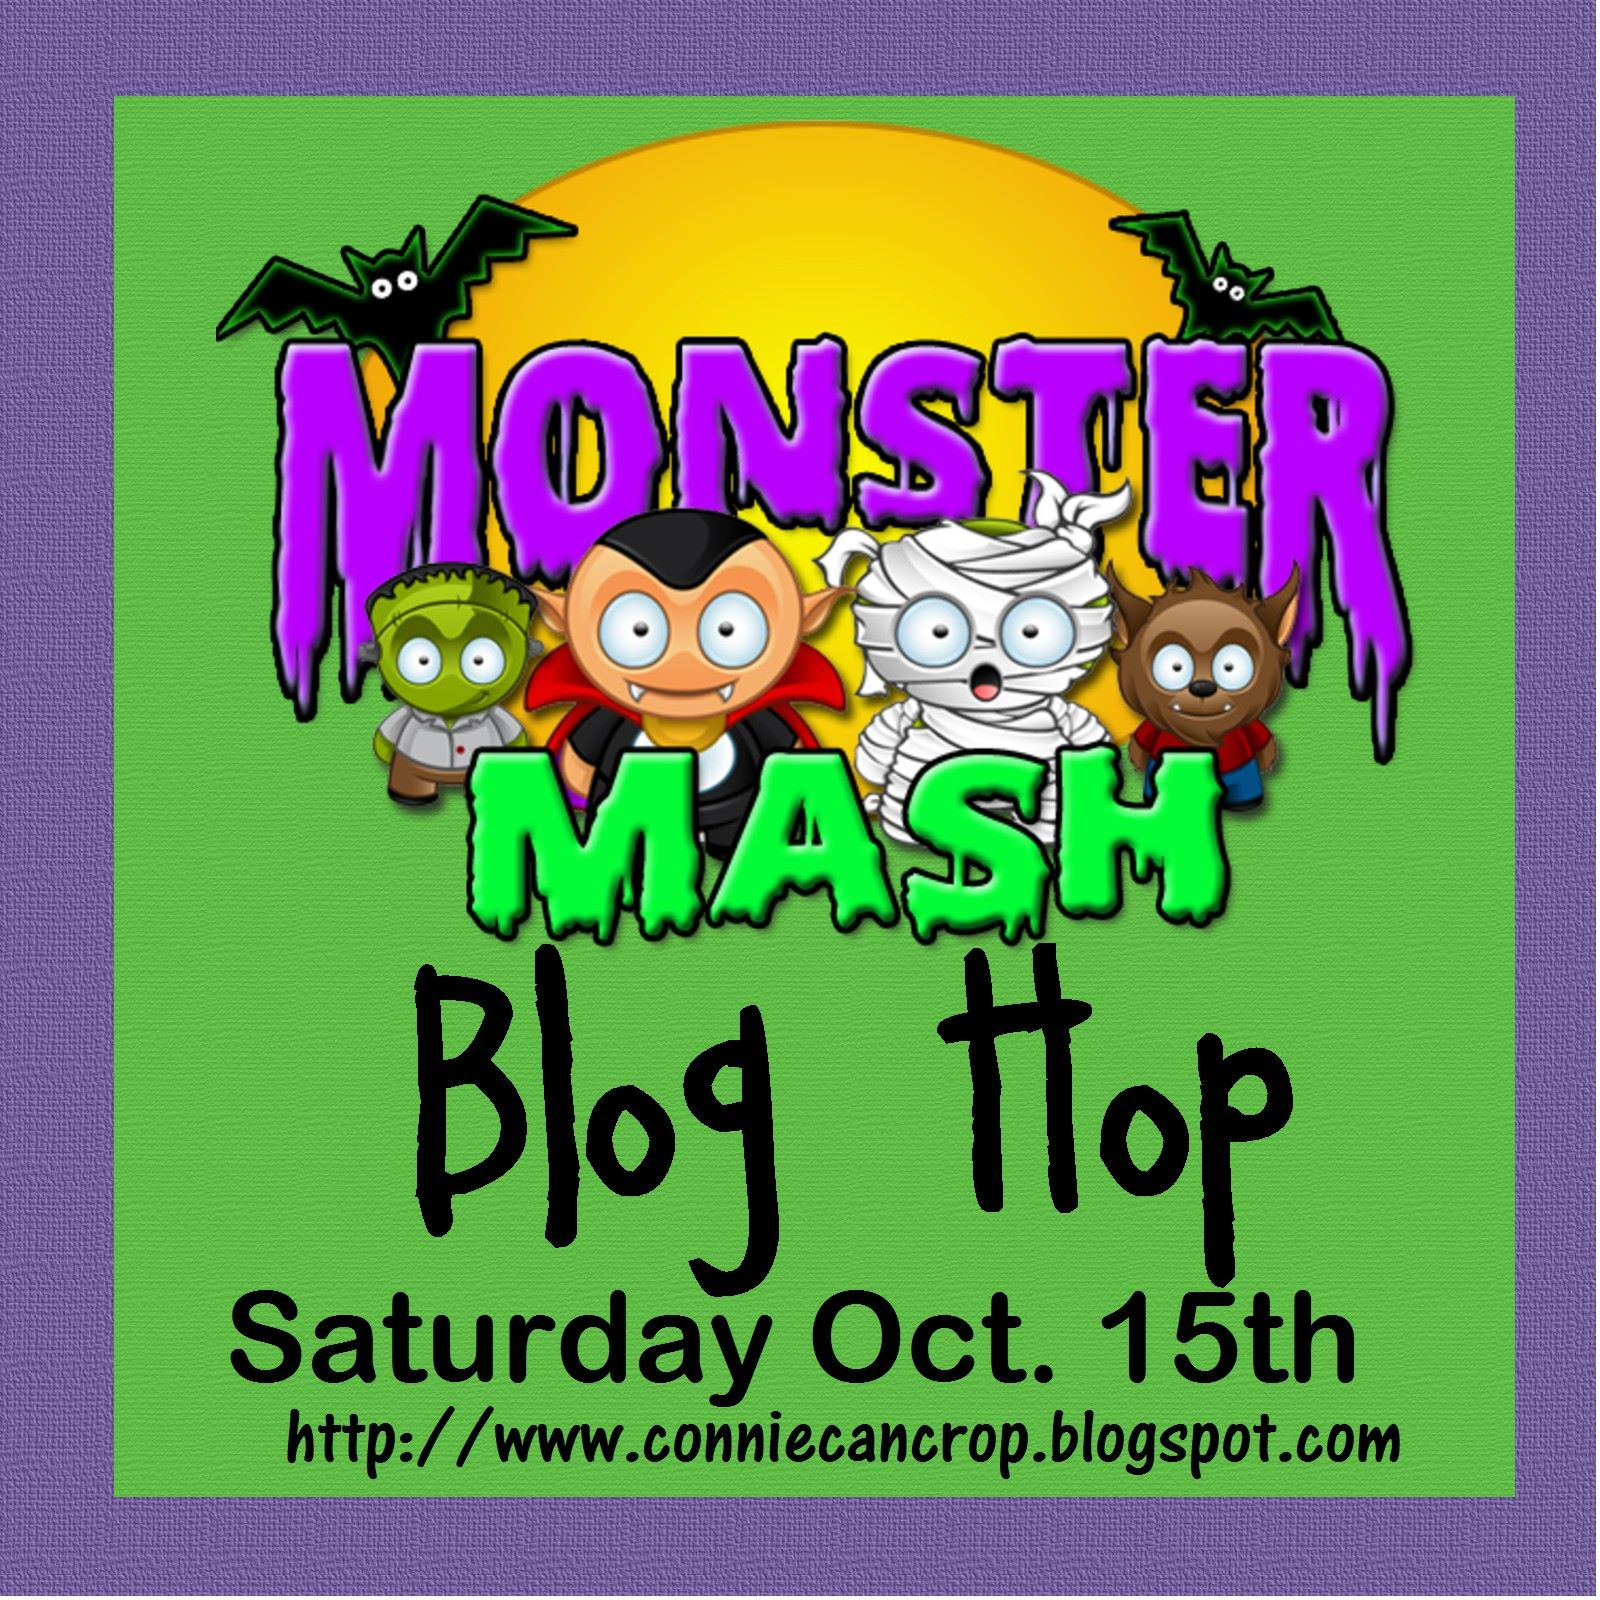 OCTOBER BLOG HOPS: